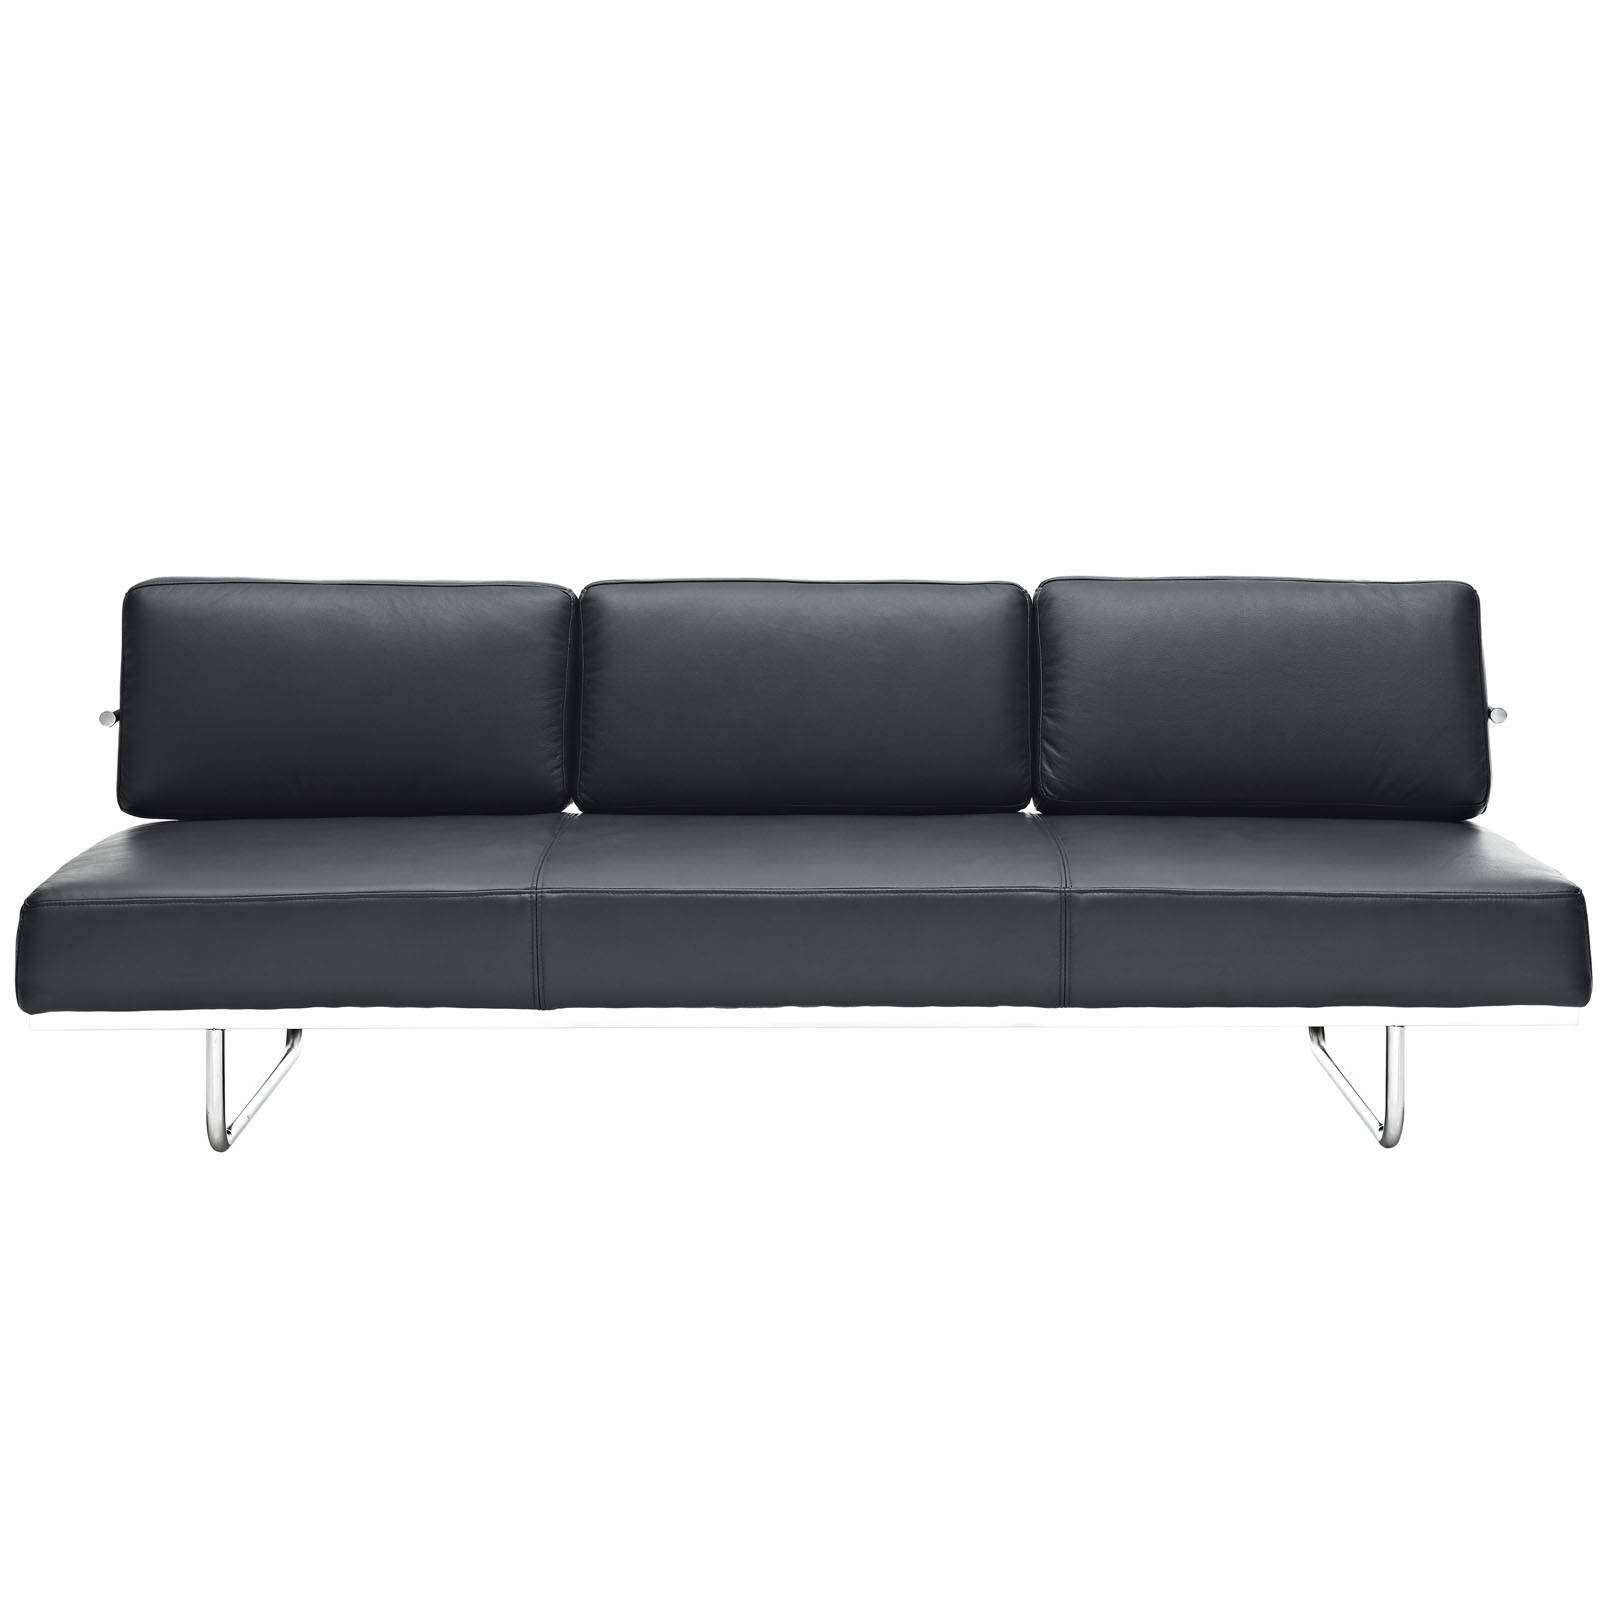 Le corbusier style lc5 sofa daybed for Le corbusier sofa